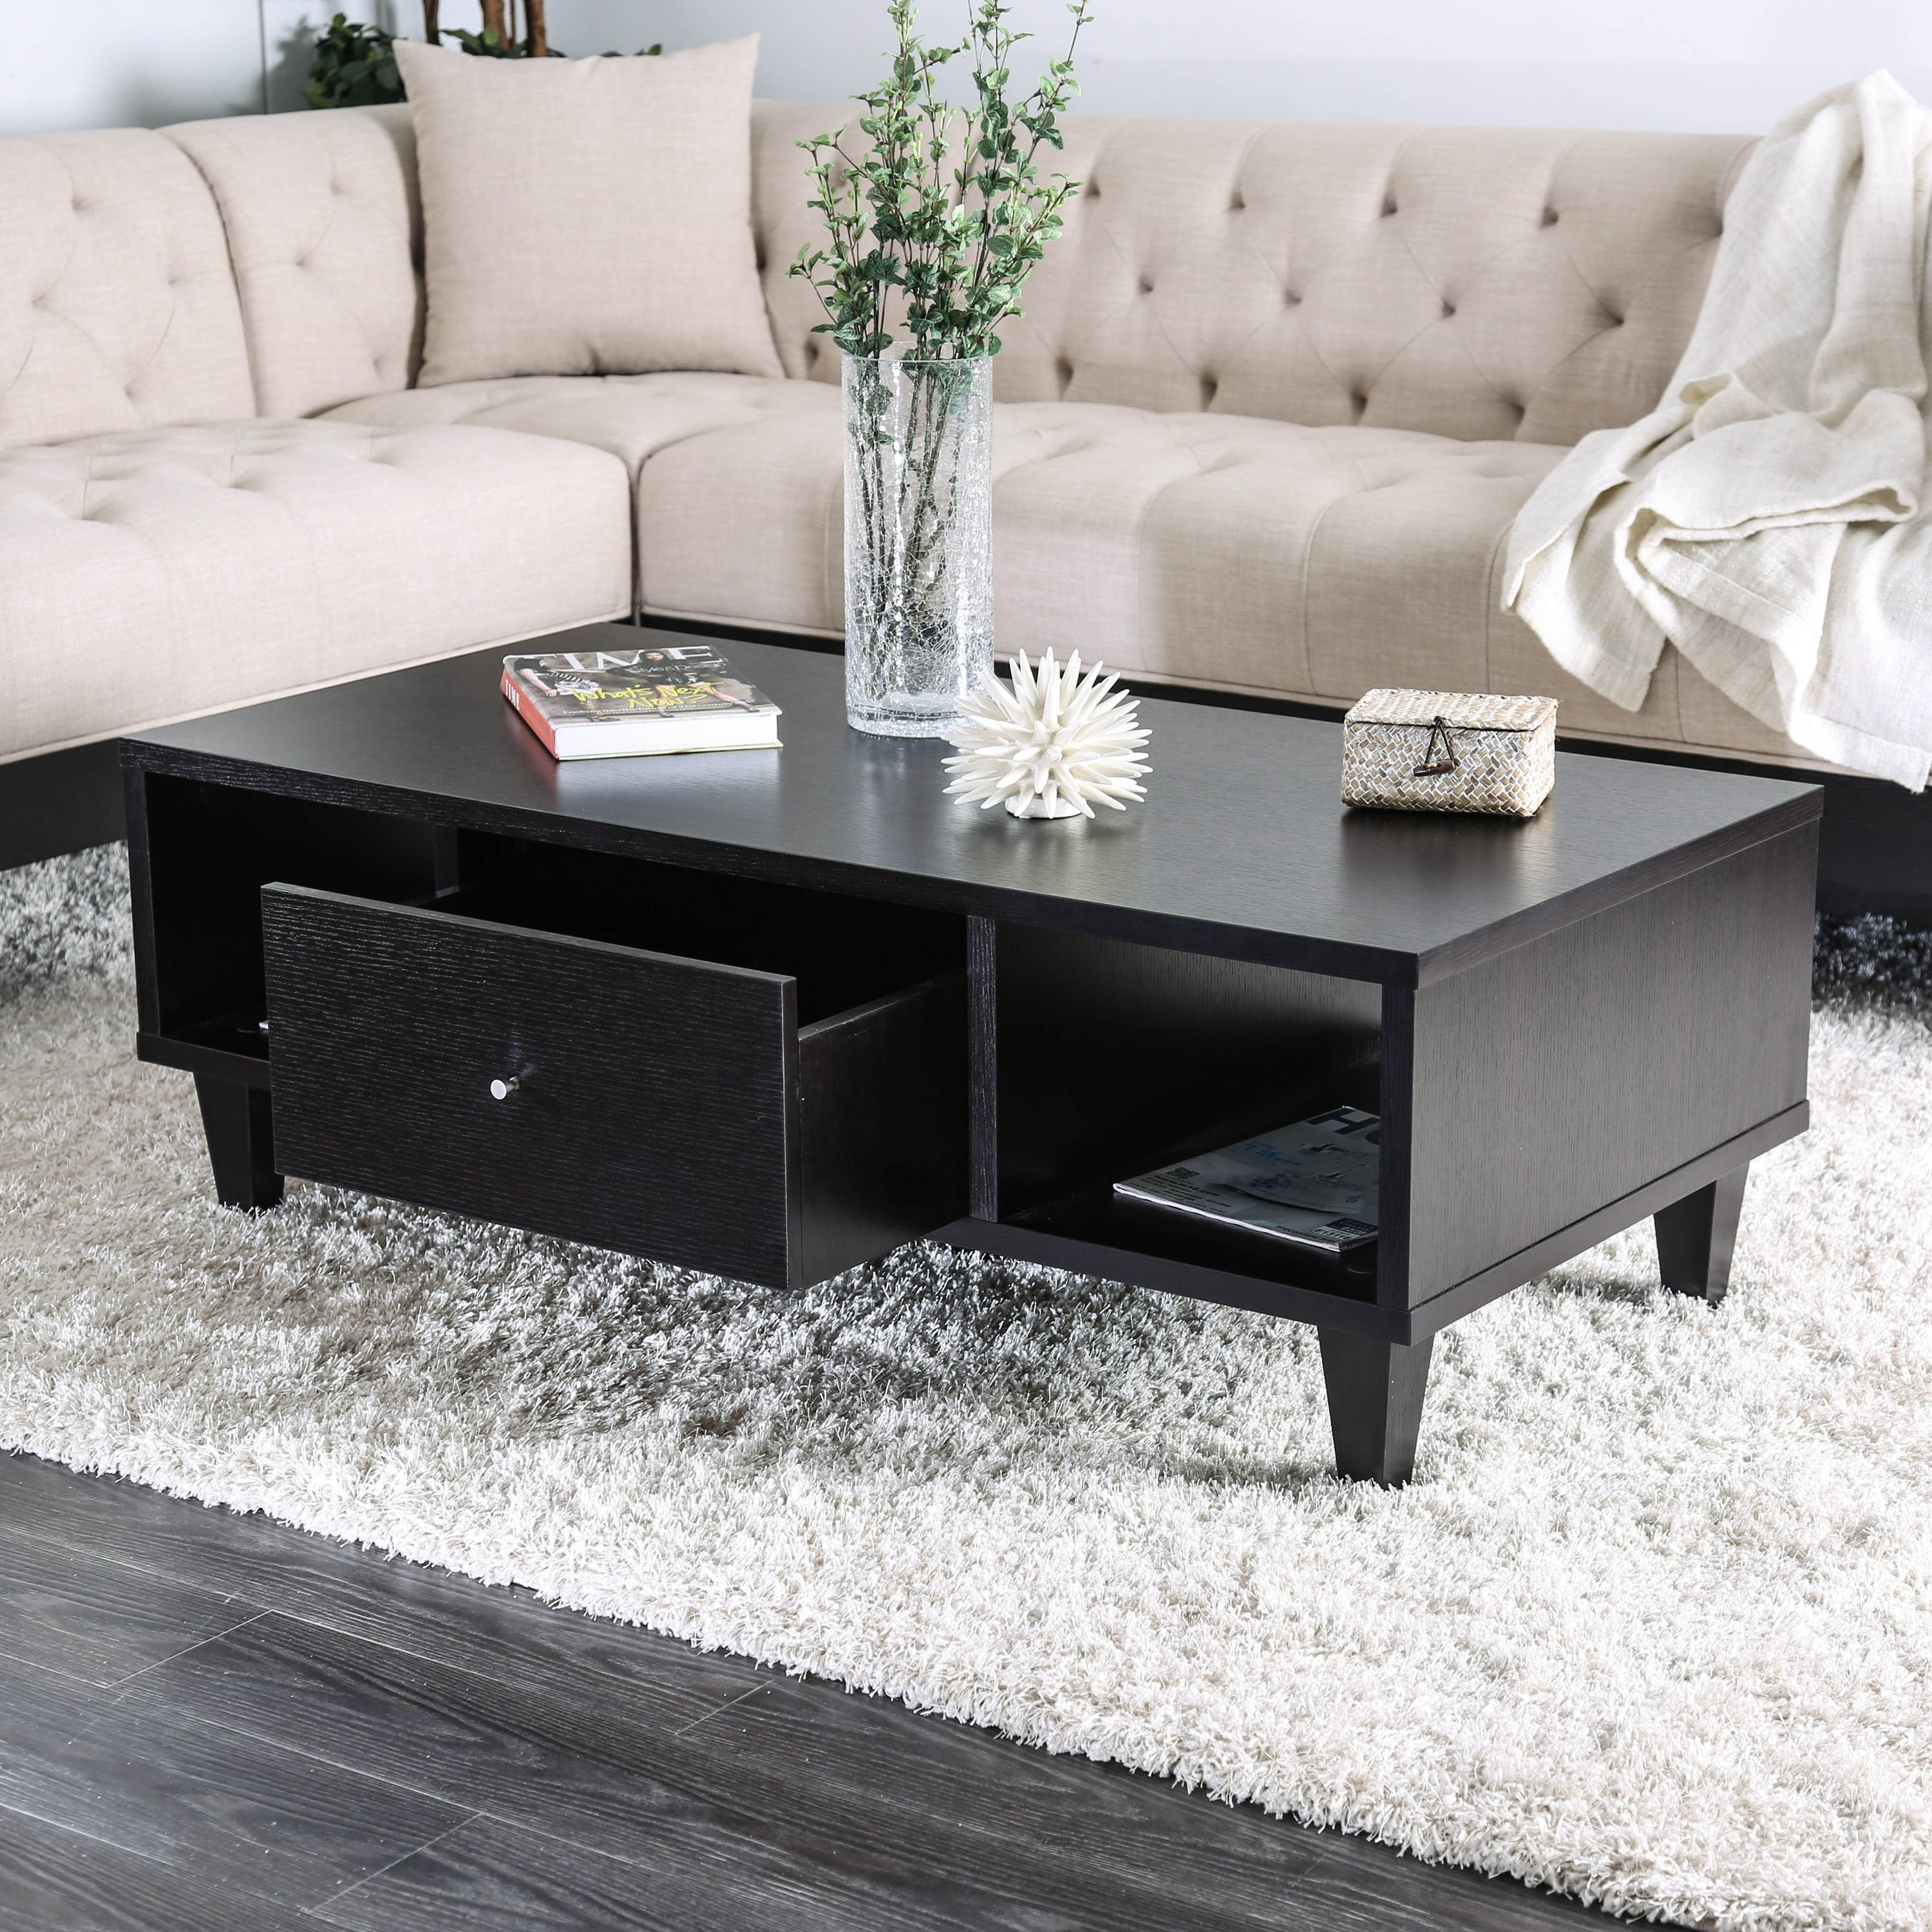 Fantastic Cassandra Contemporary Espresso 1 Drawer Coffee Table By Foa Ibusinesslaw Wood Chair Design Ideas Ibusinesslaworg